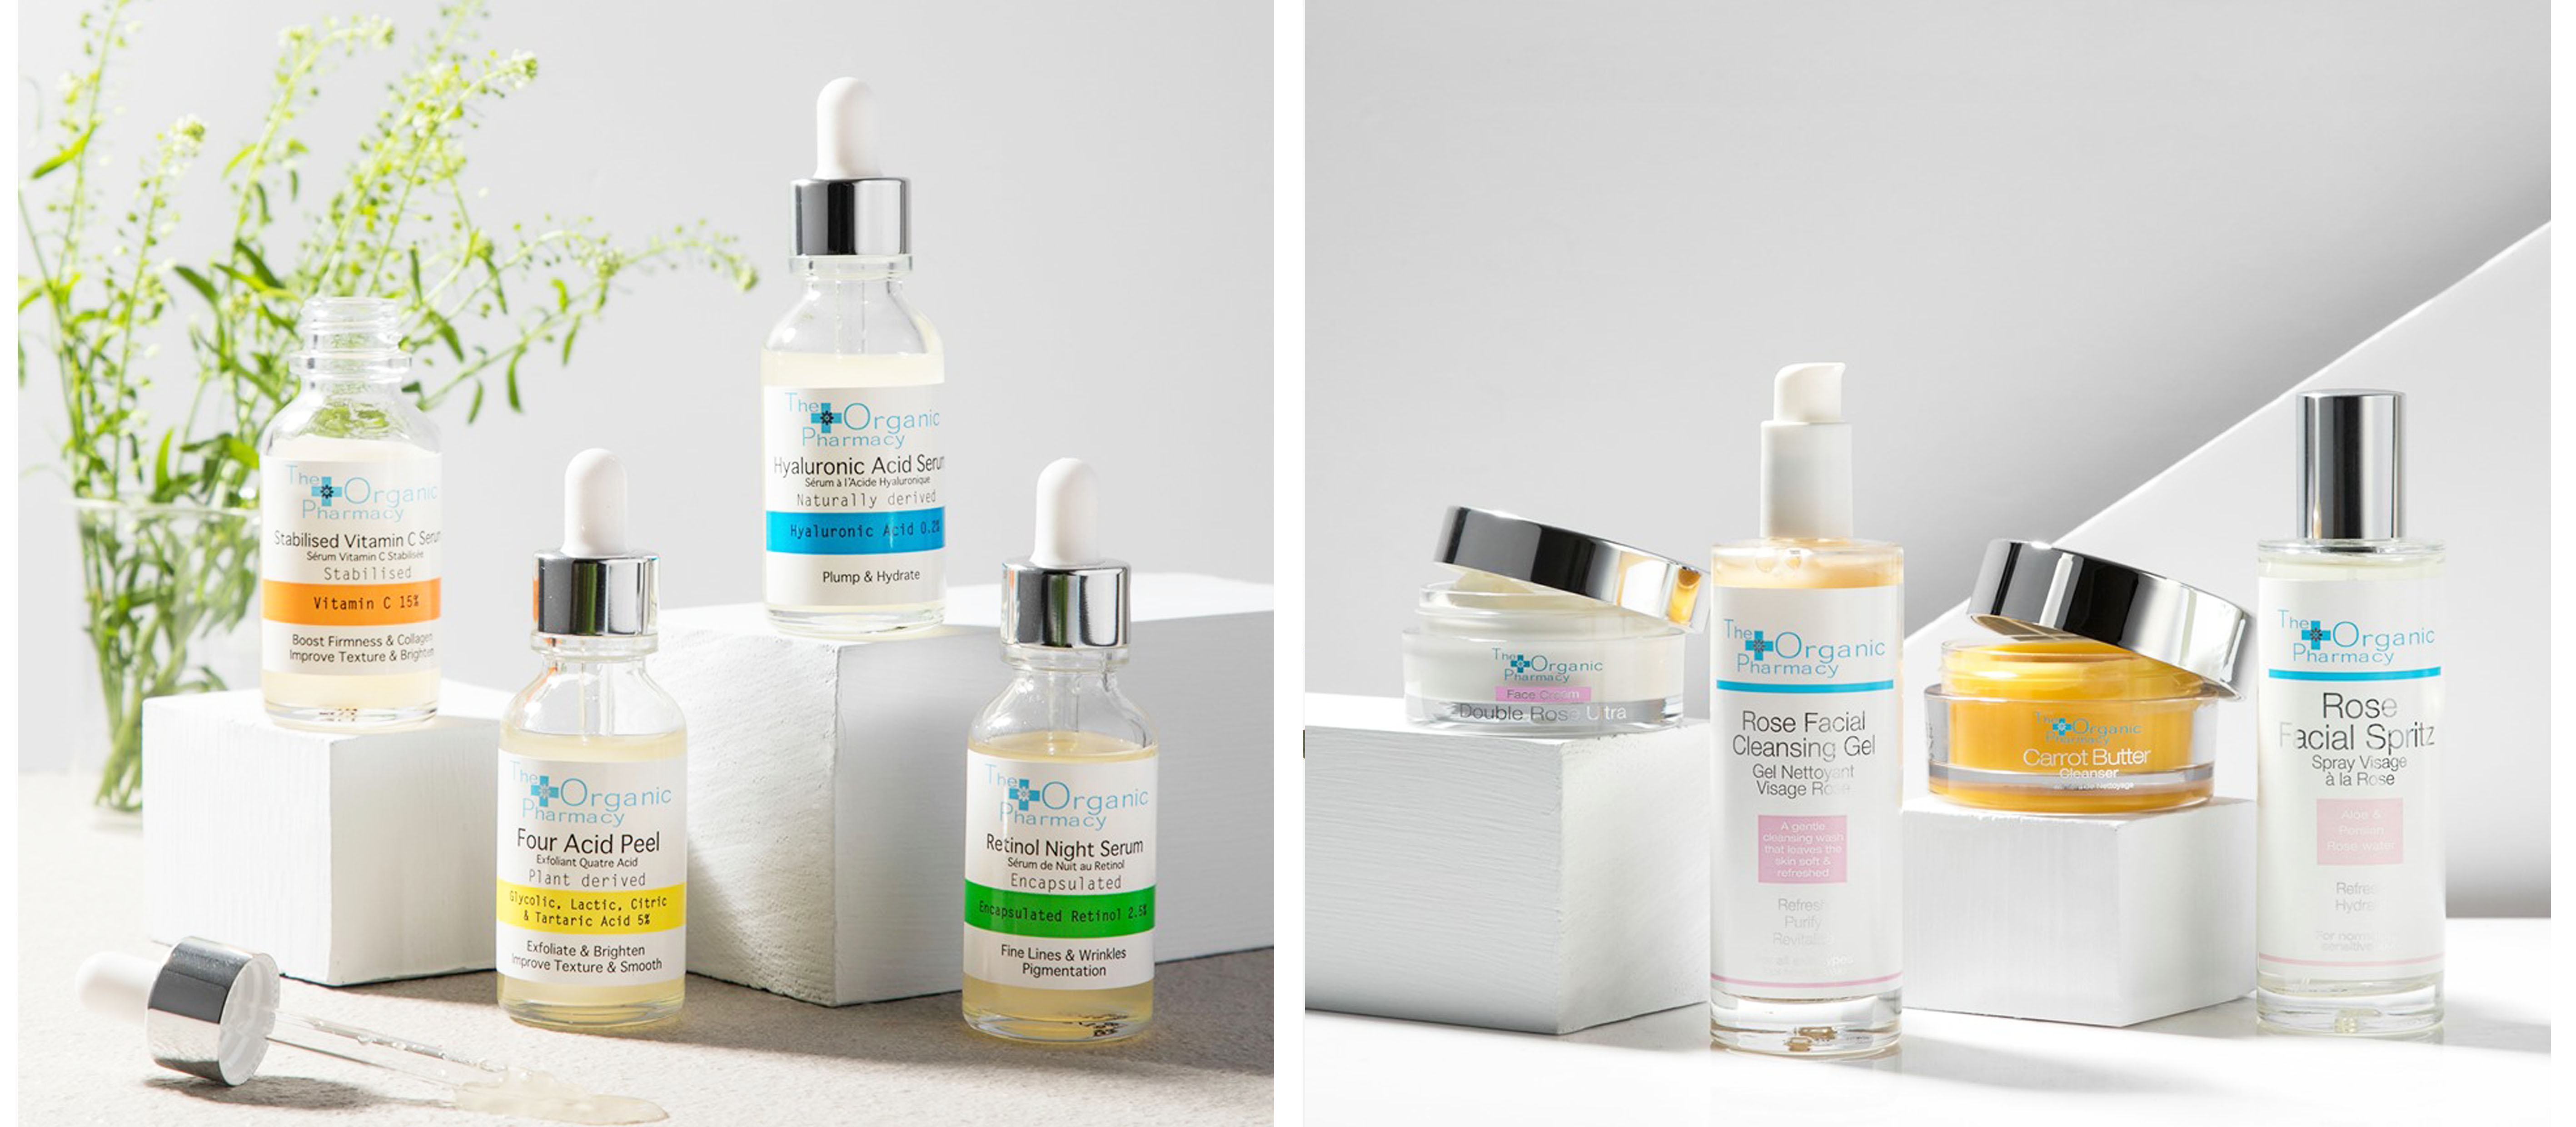 Organic Pharmacy Skincare